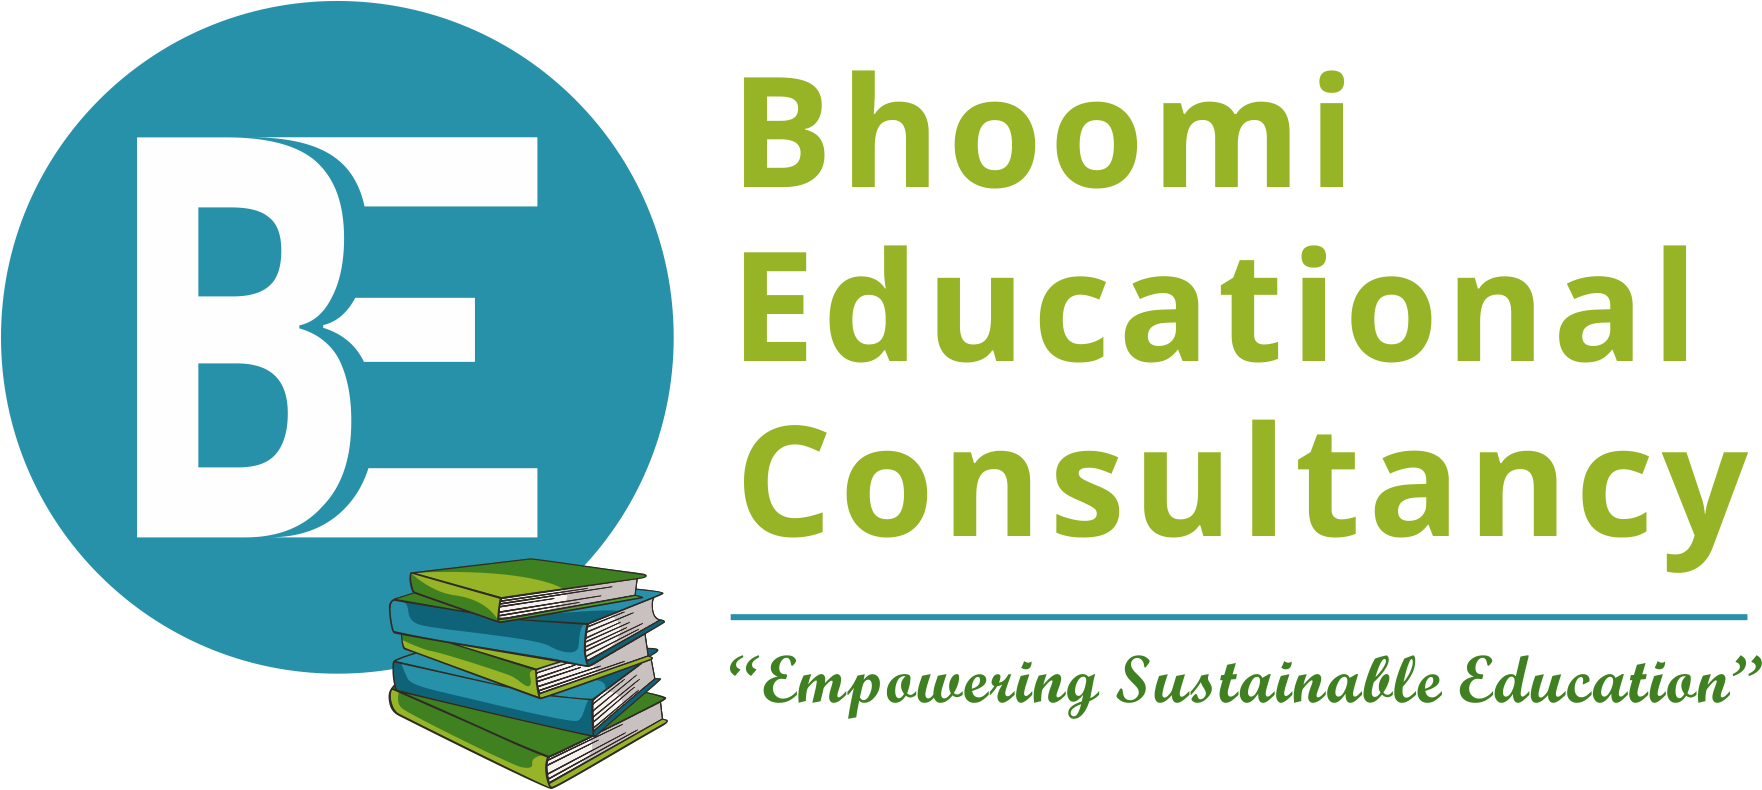 Bhoomi Educational Consultancy